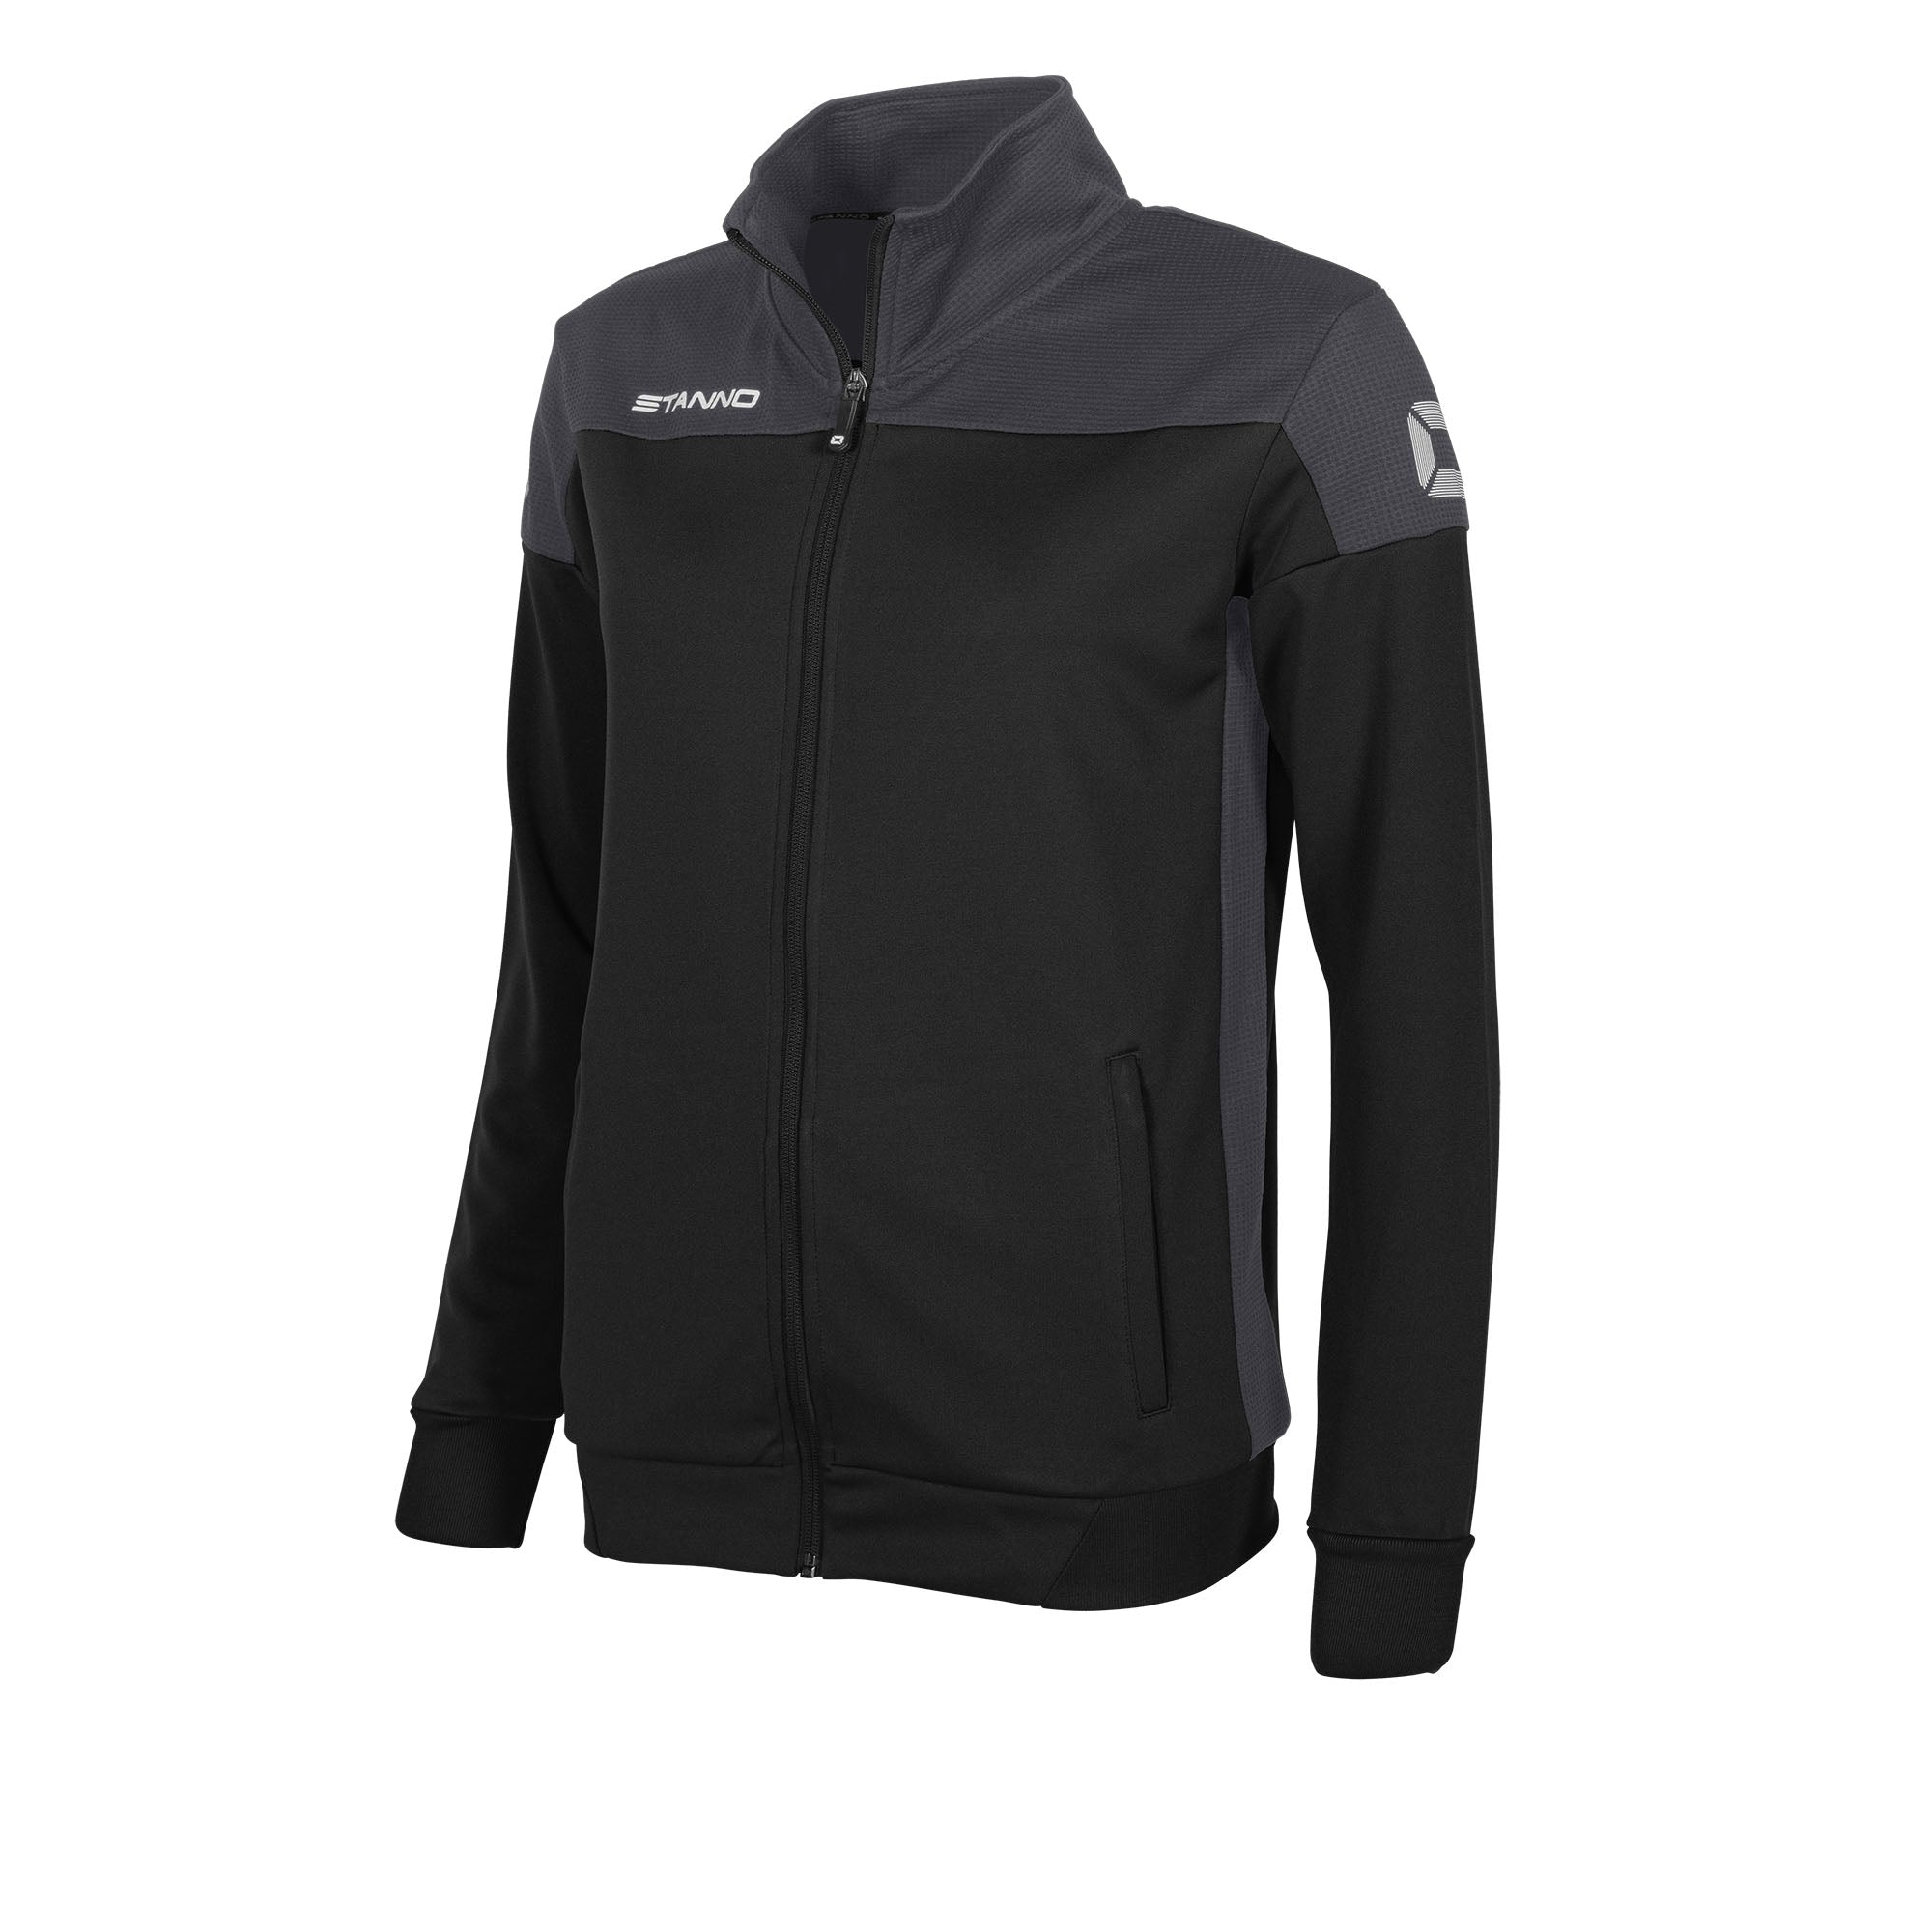 Stanno Pride TTS Jacket Ladies - Black/Anthracite